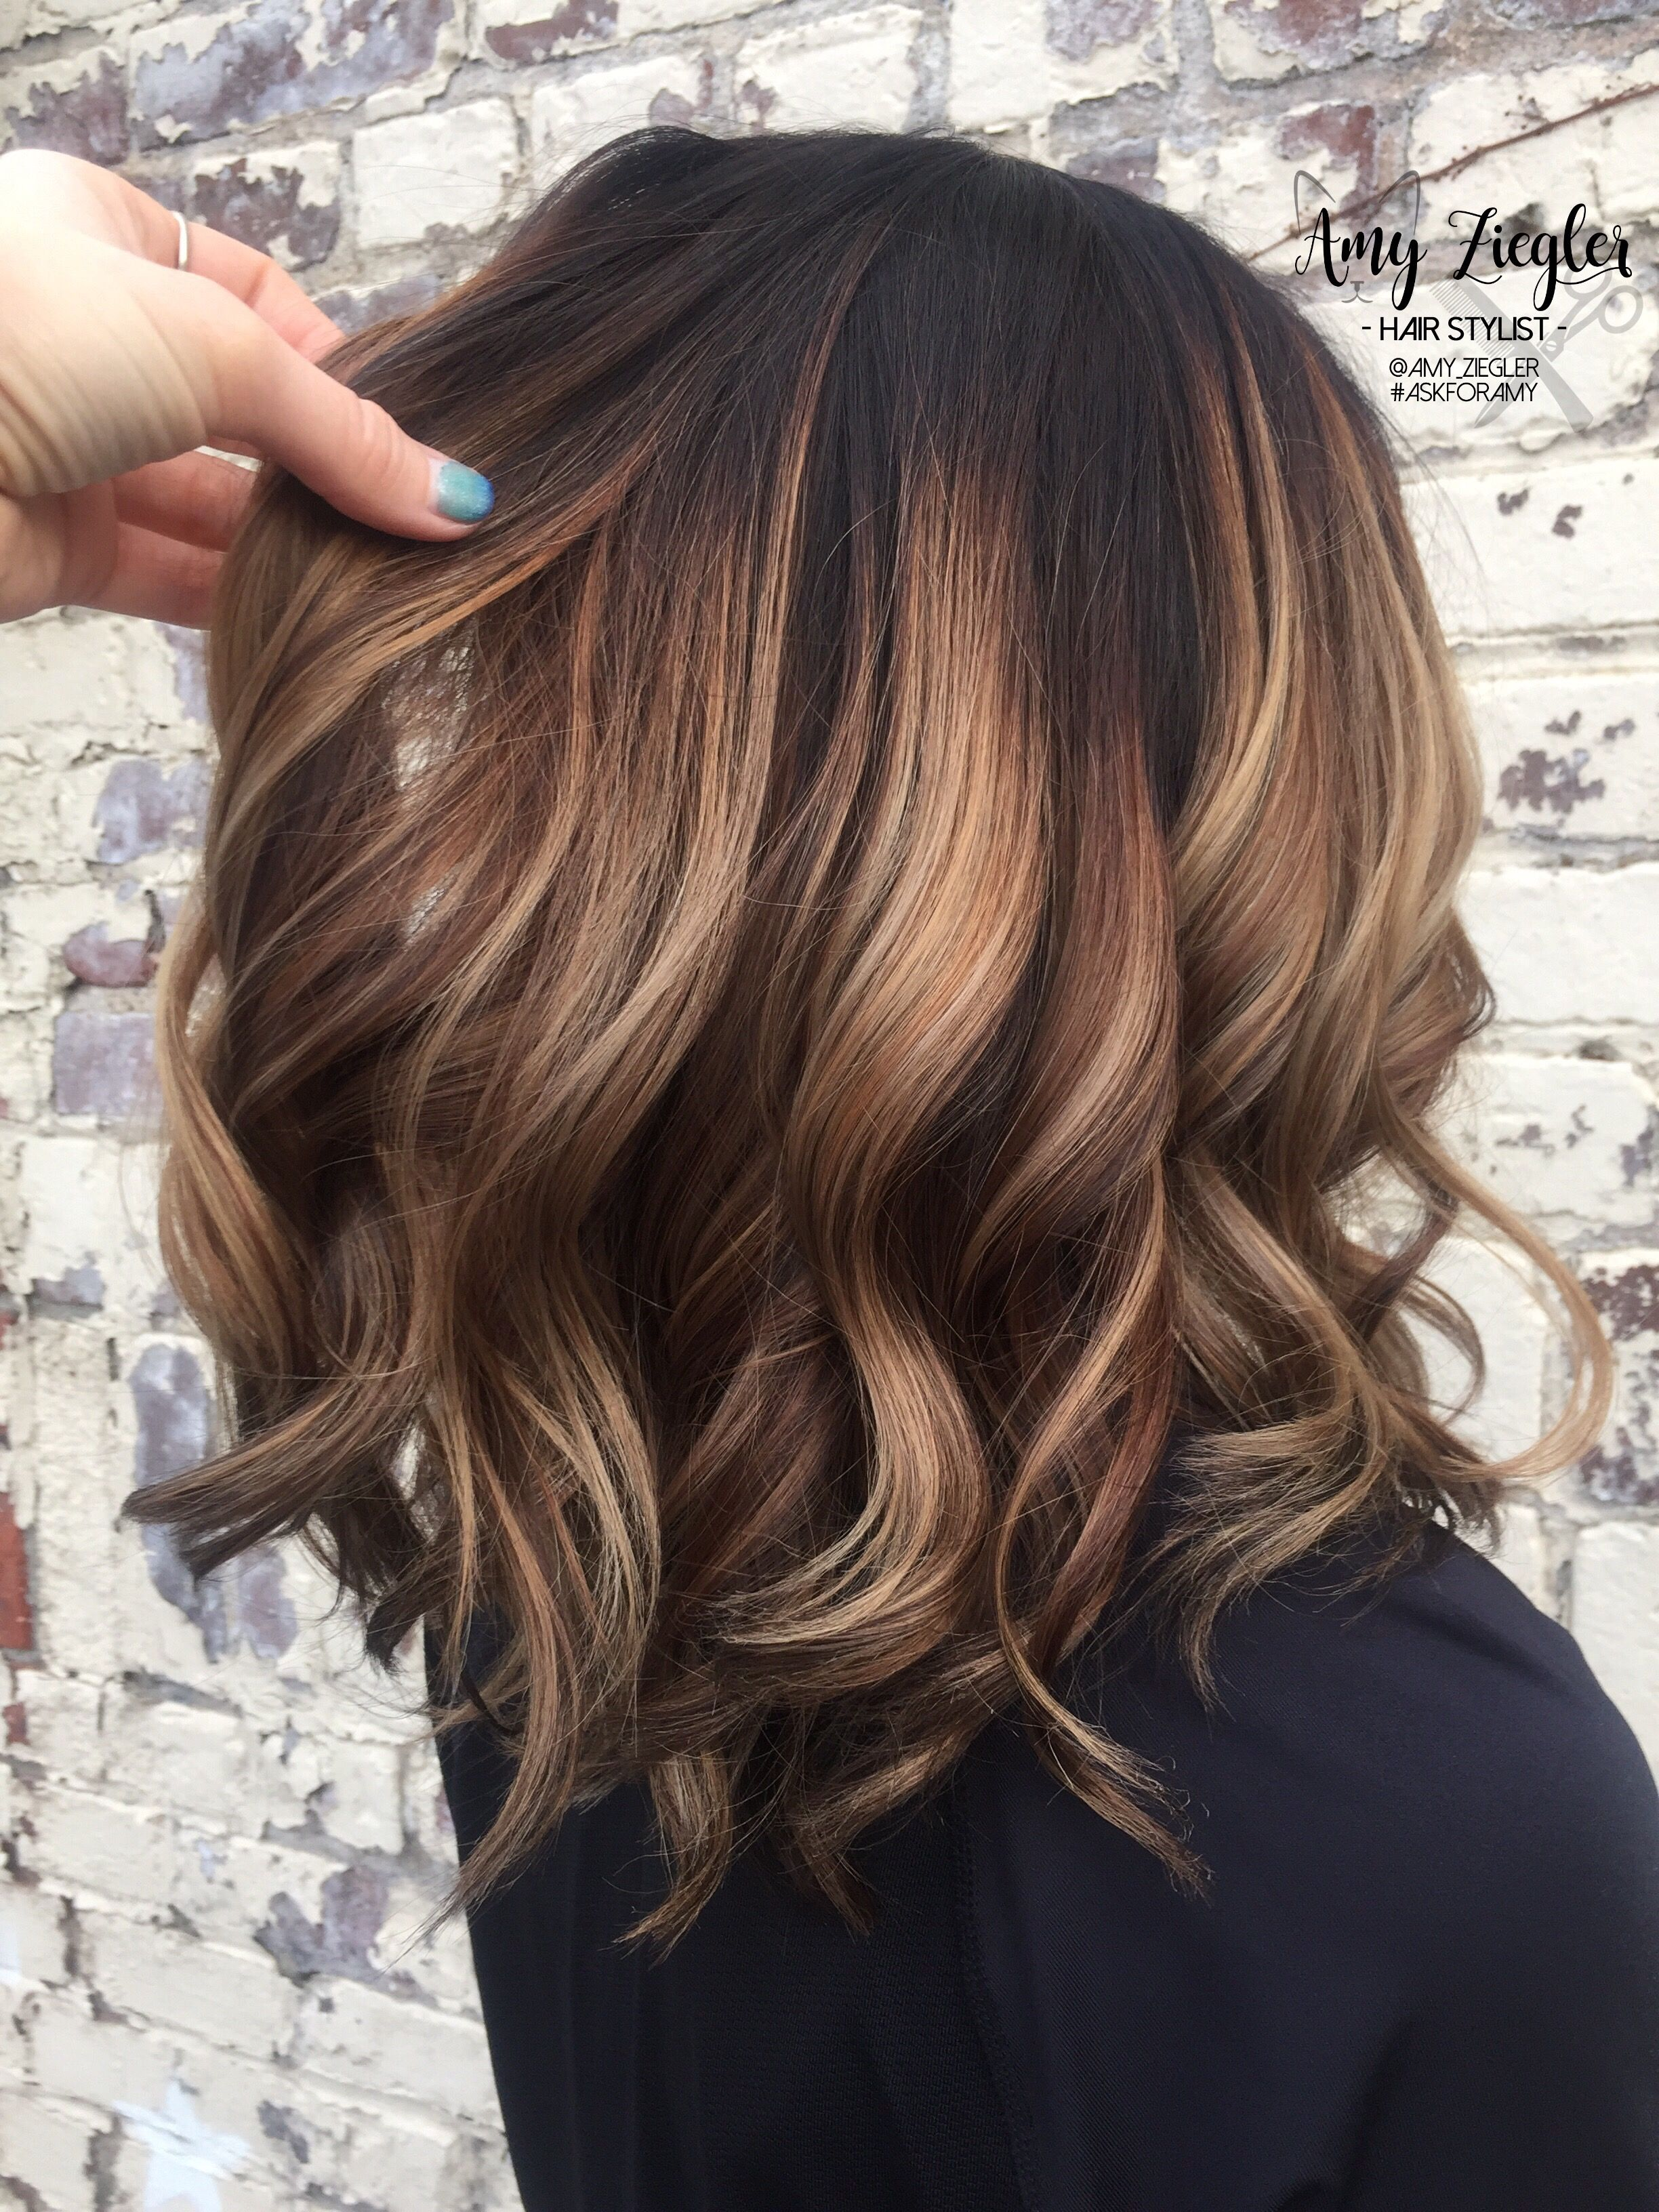 Chunky blonde balayage on dark hair by askforamy askforamy